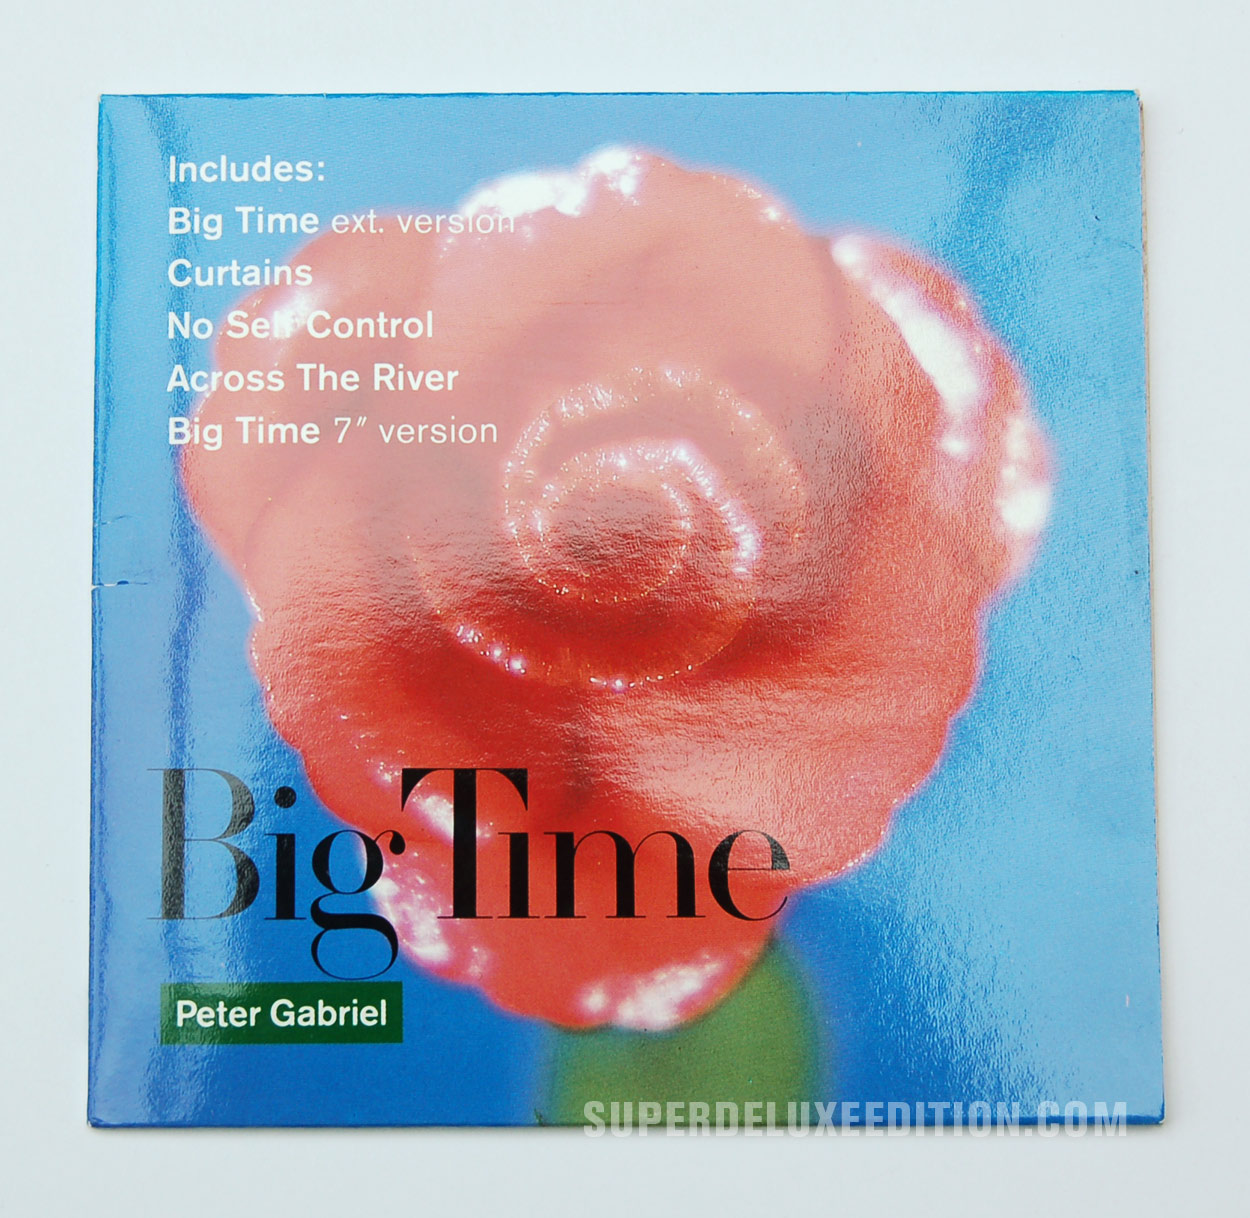 Peter Gabriel / Big Time CD single